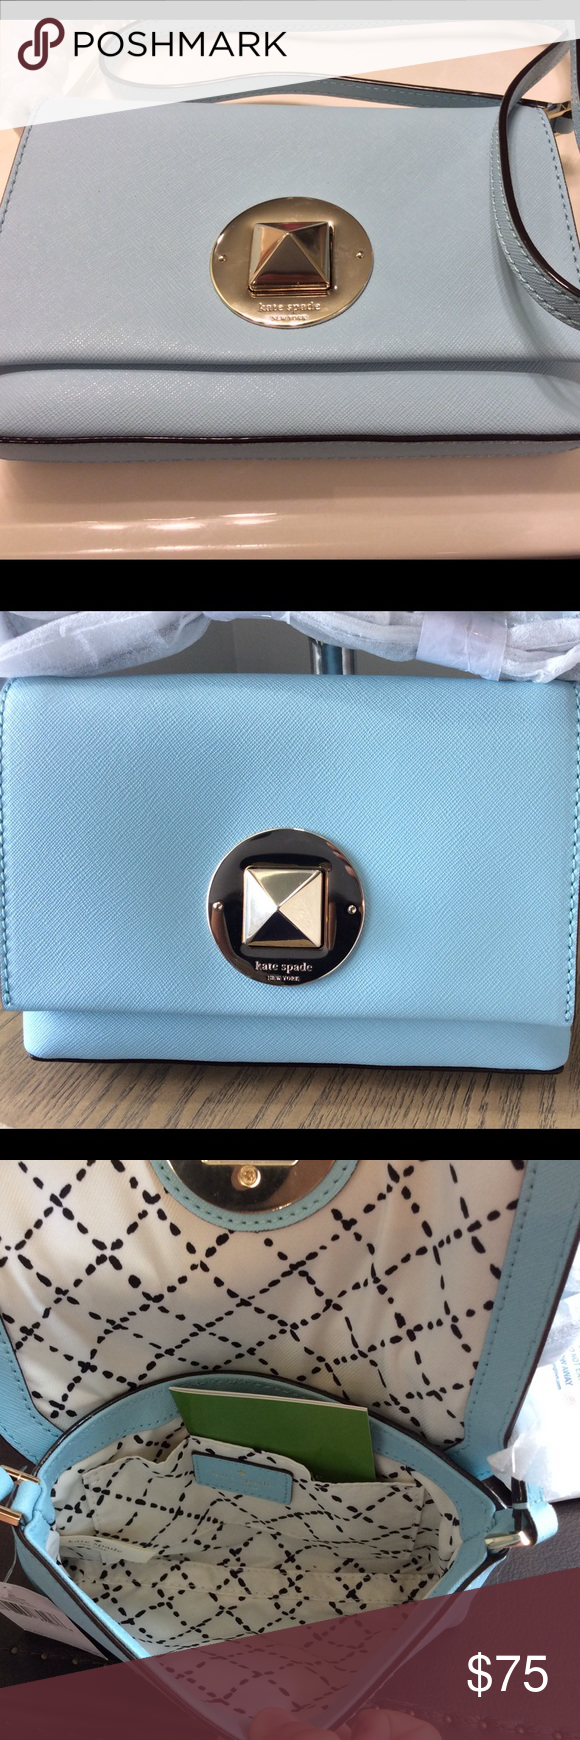 "NWT Kate Spade Newbury Lane Sally Crossbody Purse MSRP $155.00  NWT AUTHENTIC KATE SPADE NEWBURY LANE SALLY CROSSBODY PURSE.  WKRU3430  Color is Blehydrnga (417)  UPC #0 98689 87023 6  This is a beautiful blue hydrangea.   4.9""h x 7.4""w x 1.1""d drop length: 22.5"" total strap length: 45"" MATERIAL crosshatched leather with matching trim small quilt lining 14-karat light gold plated hardware style # wkru3430  crossbody with adjustable strap with flap closure interior slide pocket embossed kate…"